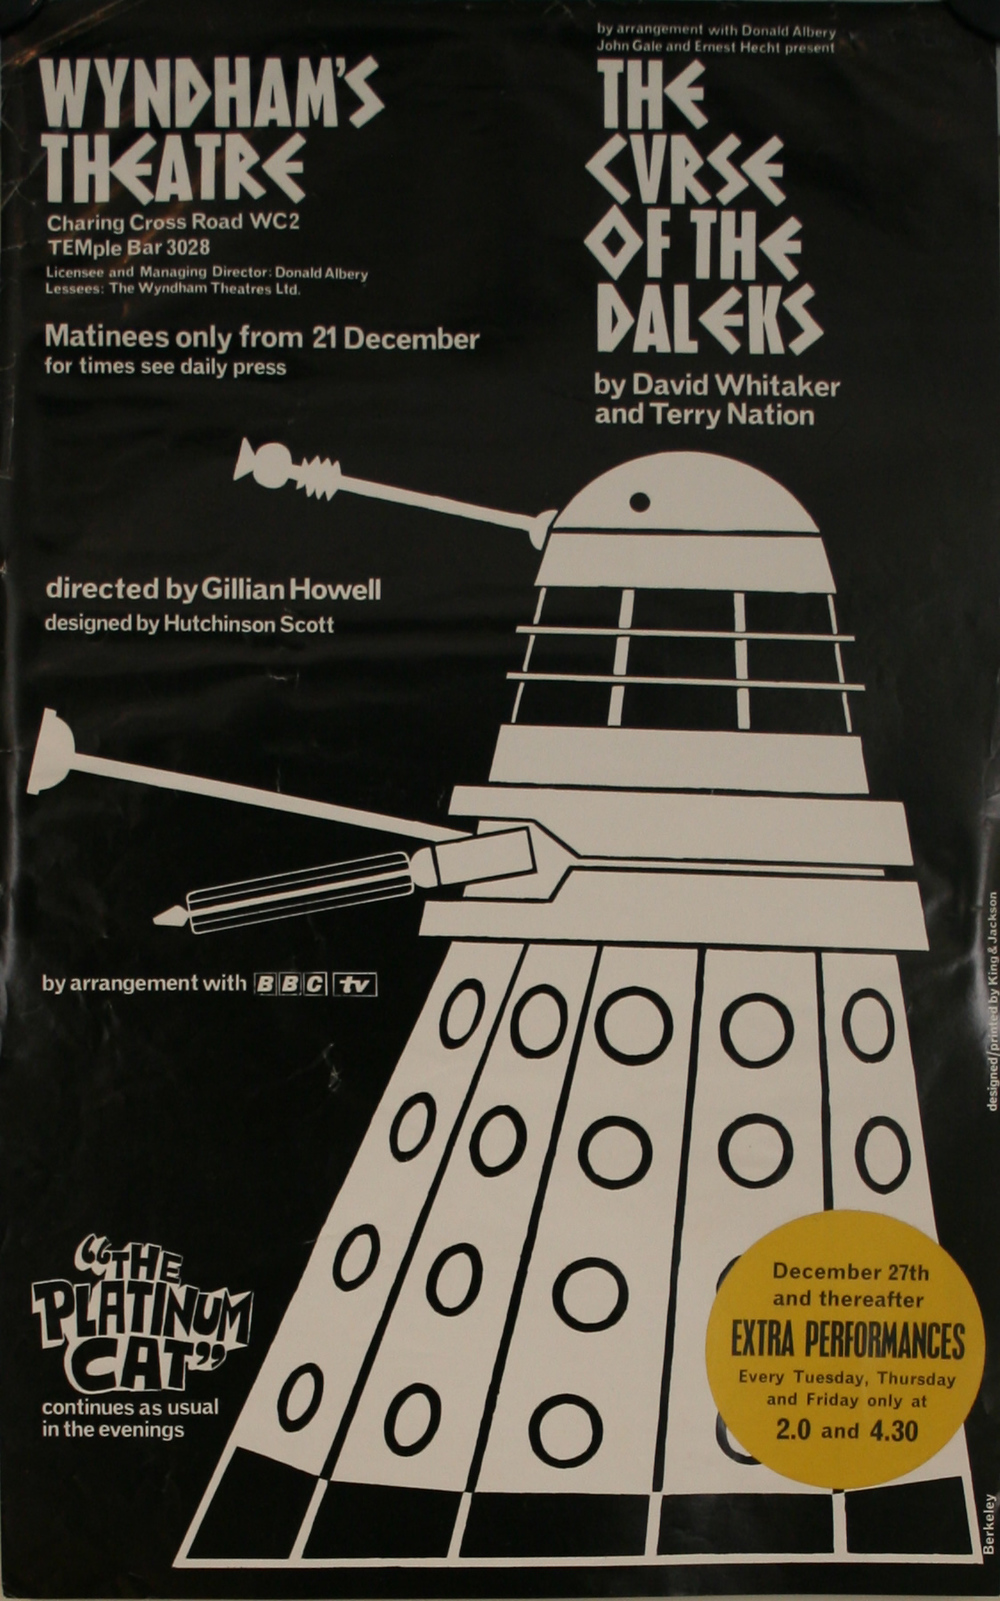 Curse Of The Daleks promo poster (1965).